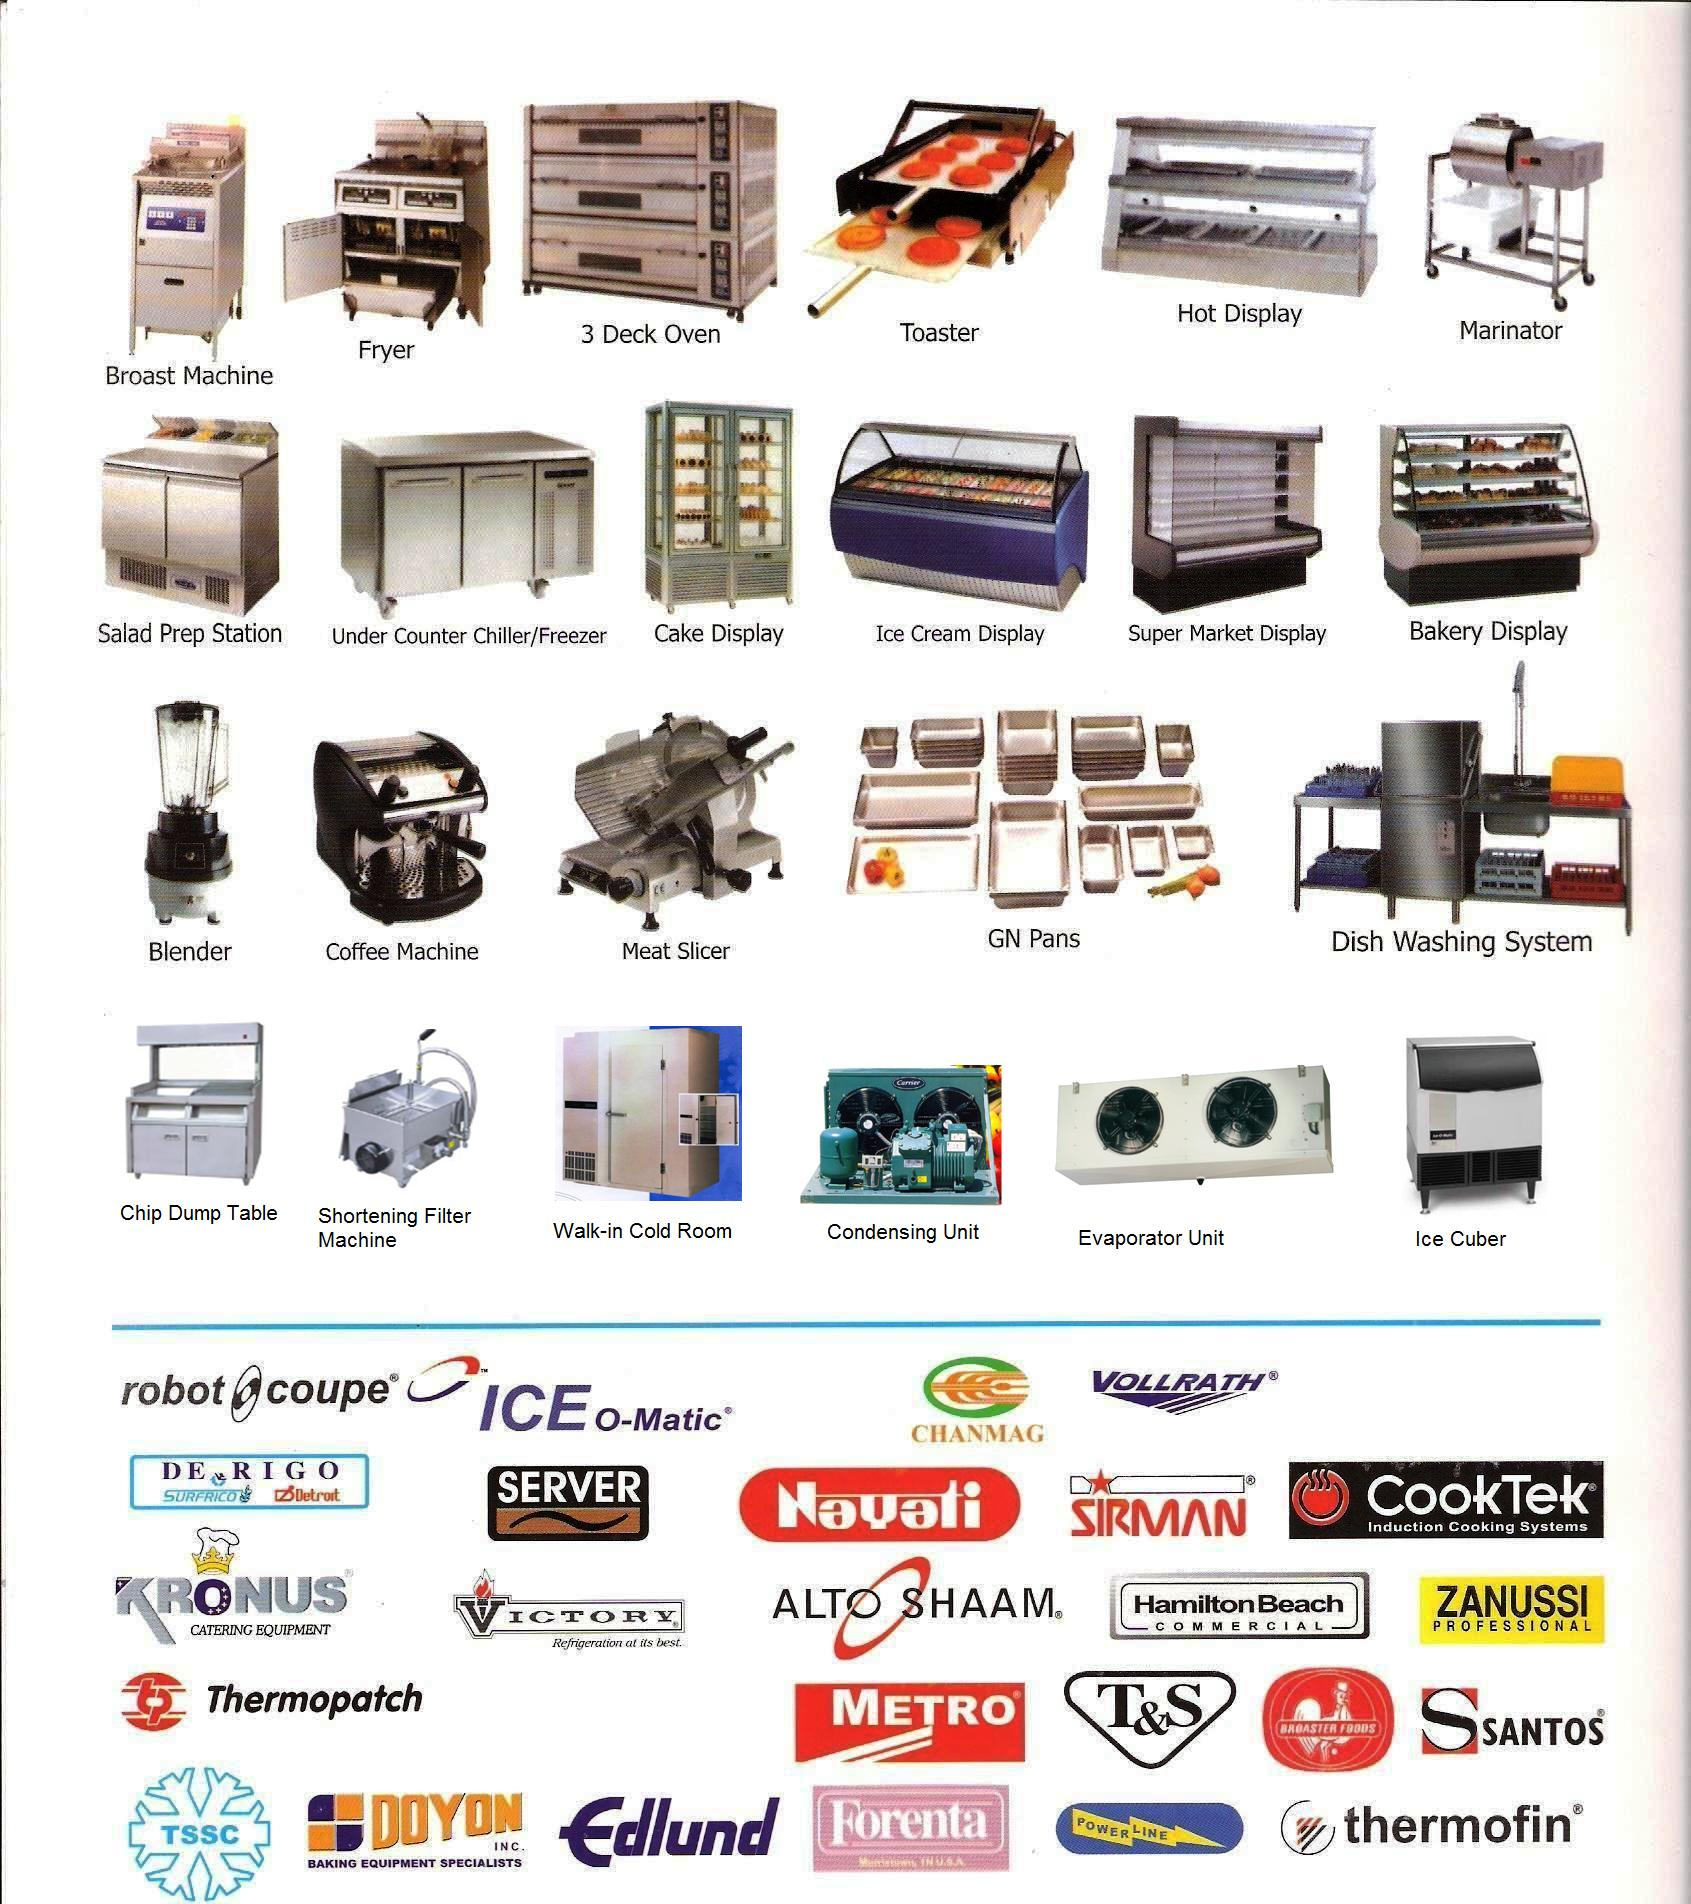 Refrigeration refrigeration kitchen equipment - New uses for home products ...